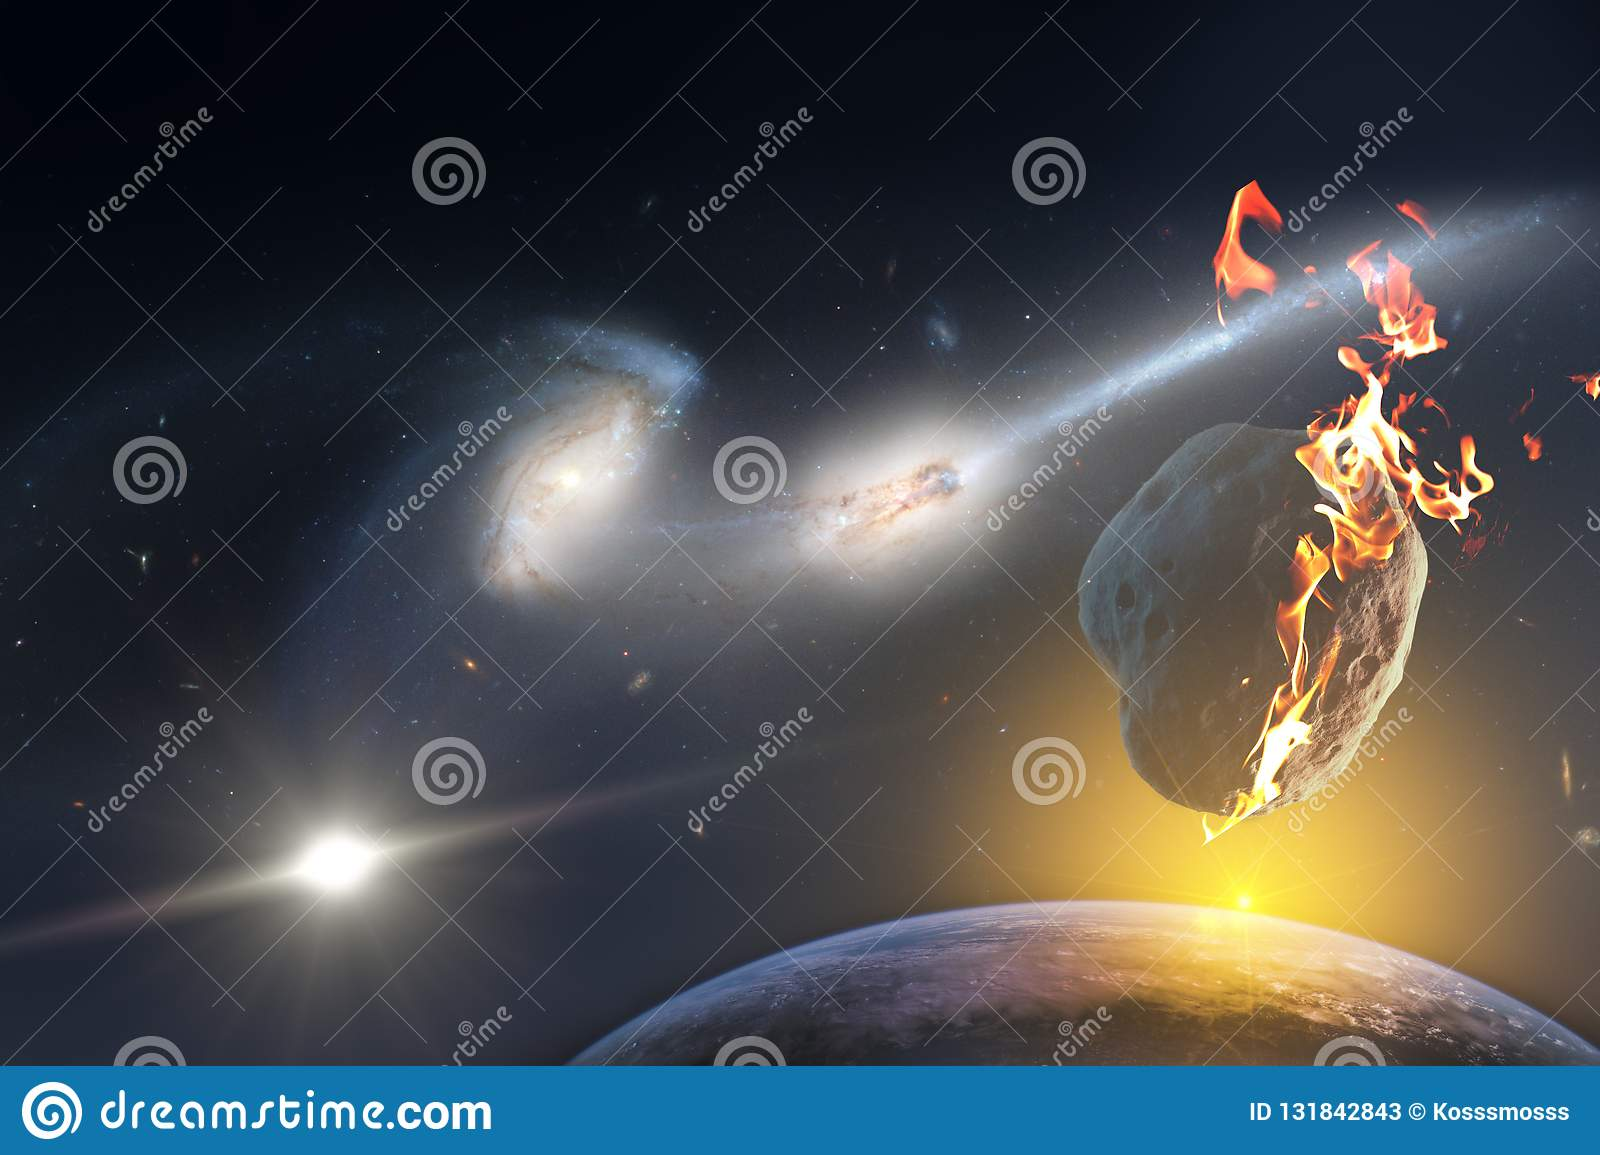 Sunrise over a planet doomed to death from the fall of a meteorite from the infinite space of the universe. Elements of this image